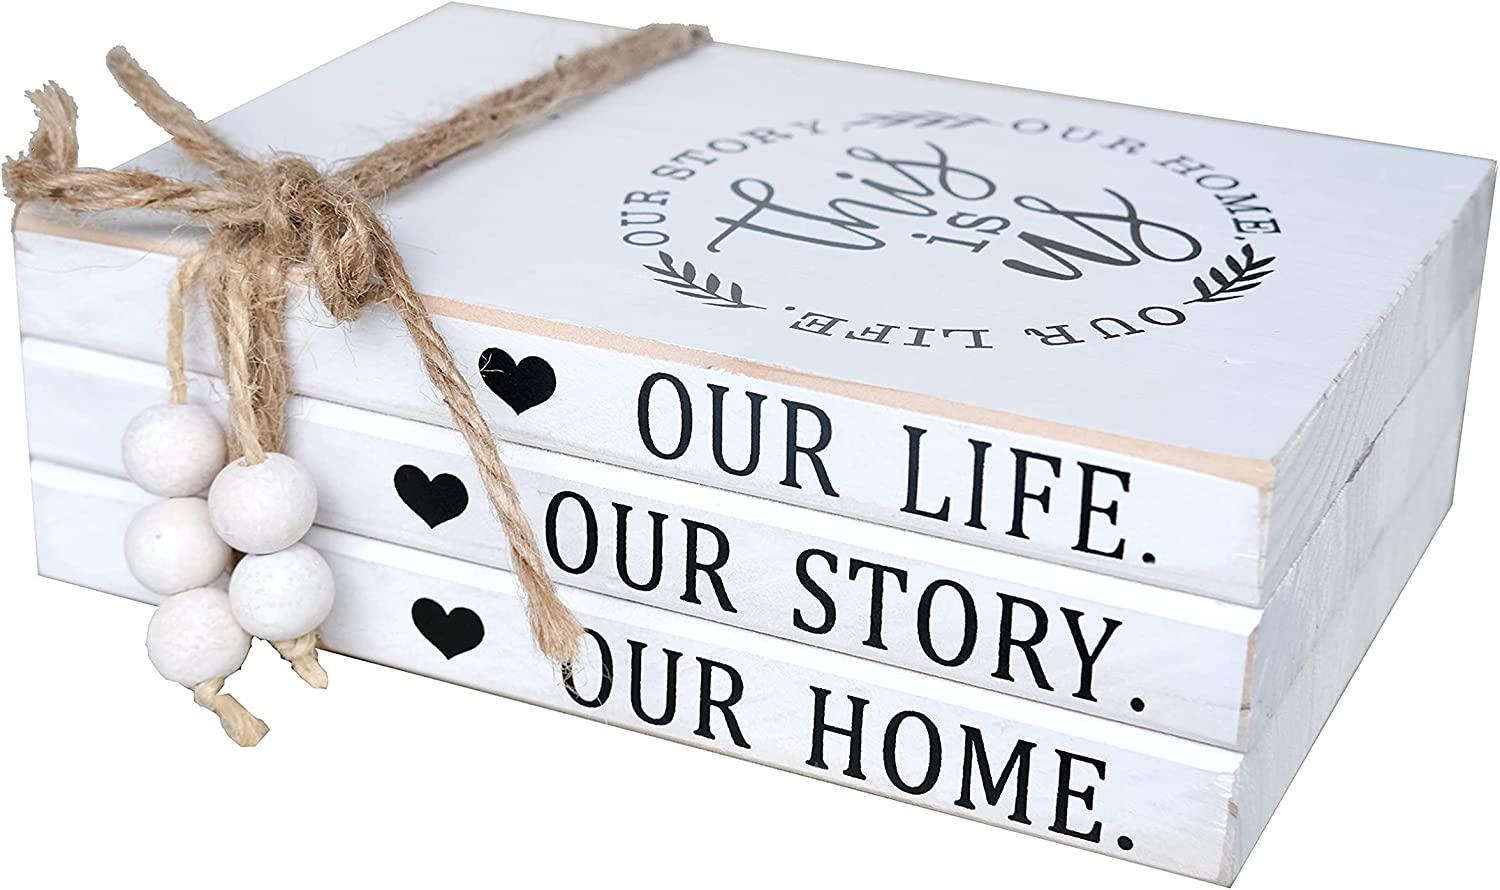 LIVDUCOT Wood Decorative Books Stack Rustic Home Decor Stack White Wooden Books for Modern Home Decor,Shelf,Mantle or Tray This is Us Our Life Our Story Our Home 7X 5.5X 2.5'